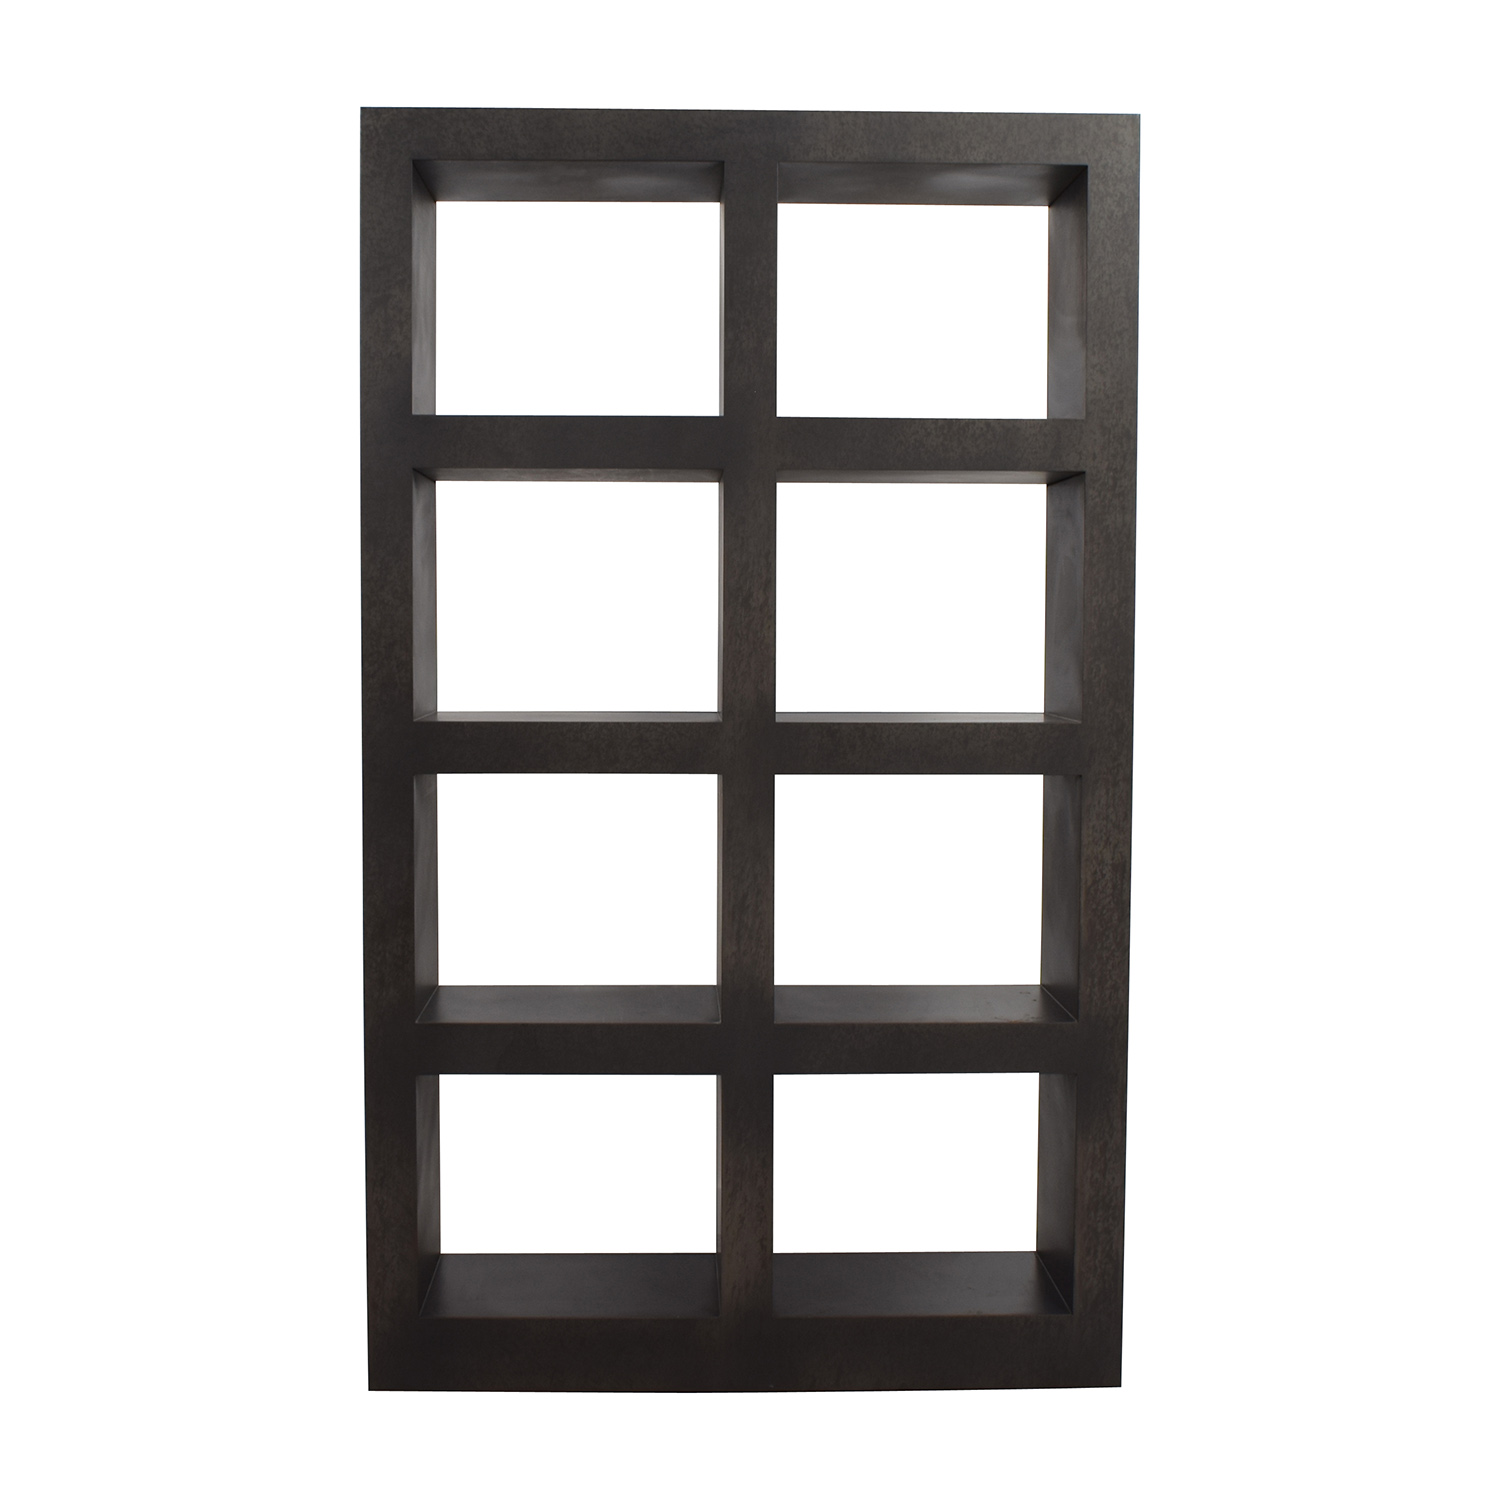 Crate & Barrel Crate & Barrel Shadow Box Tower dimensions